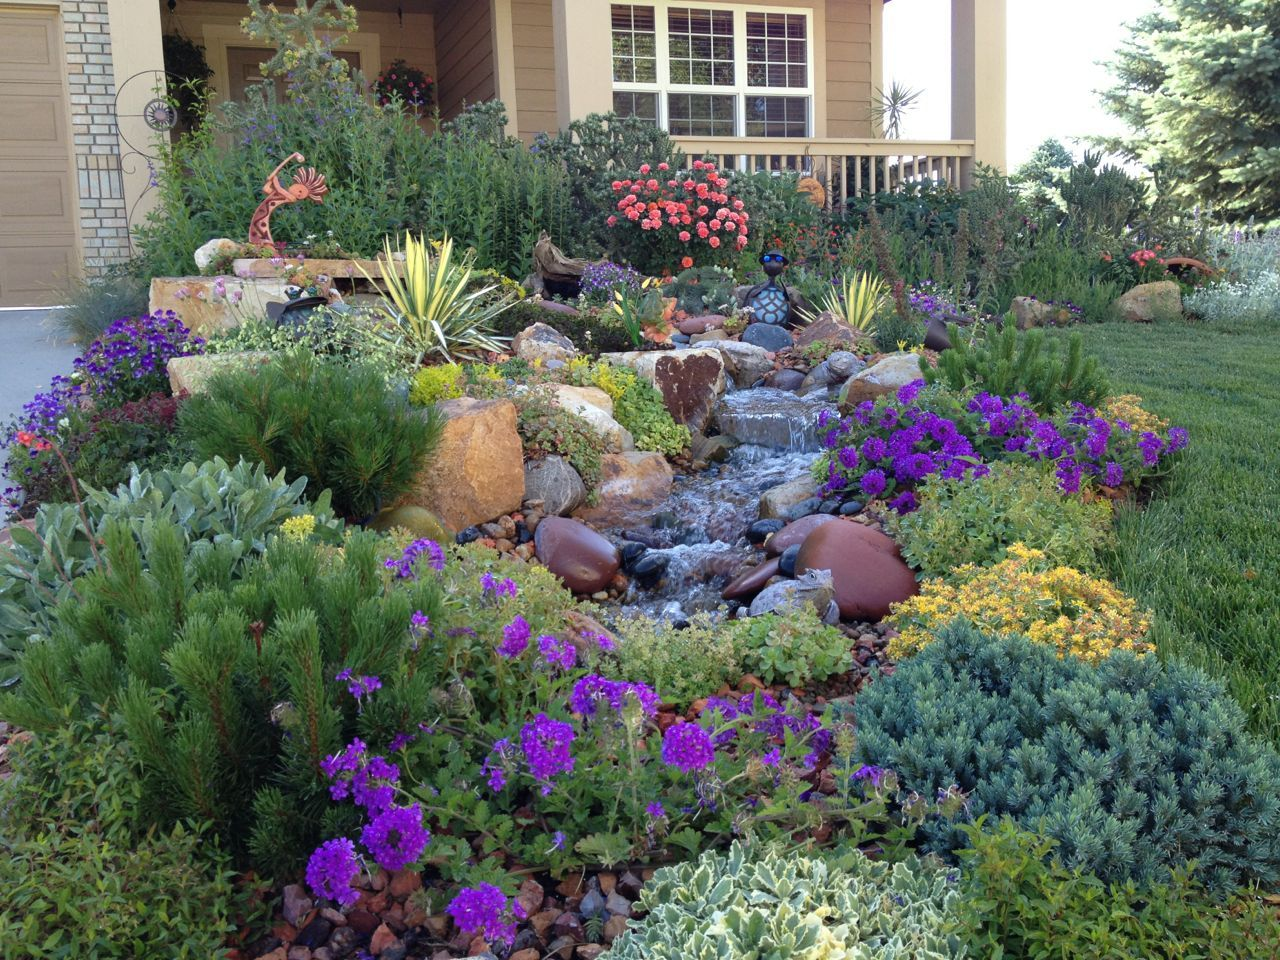 Perennial Flower Garden Designs flower garden design perennial garden design ideas decor with Perennial Flower Garden Design Ideas Home Decorating Ideas And Tips